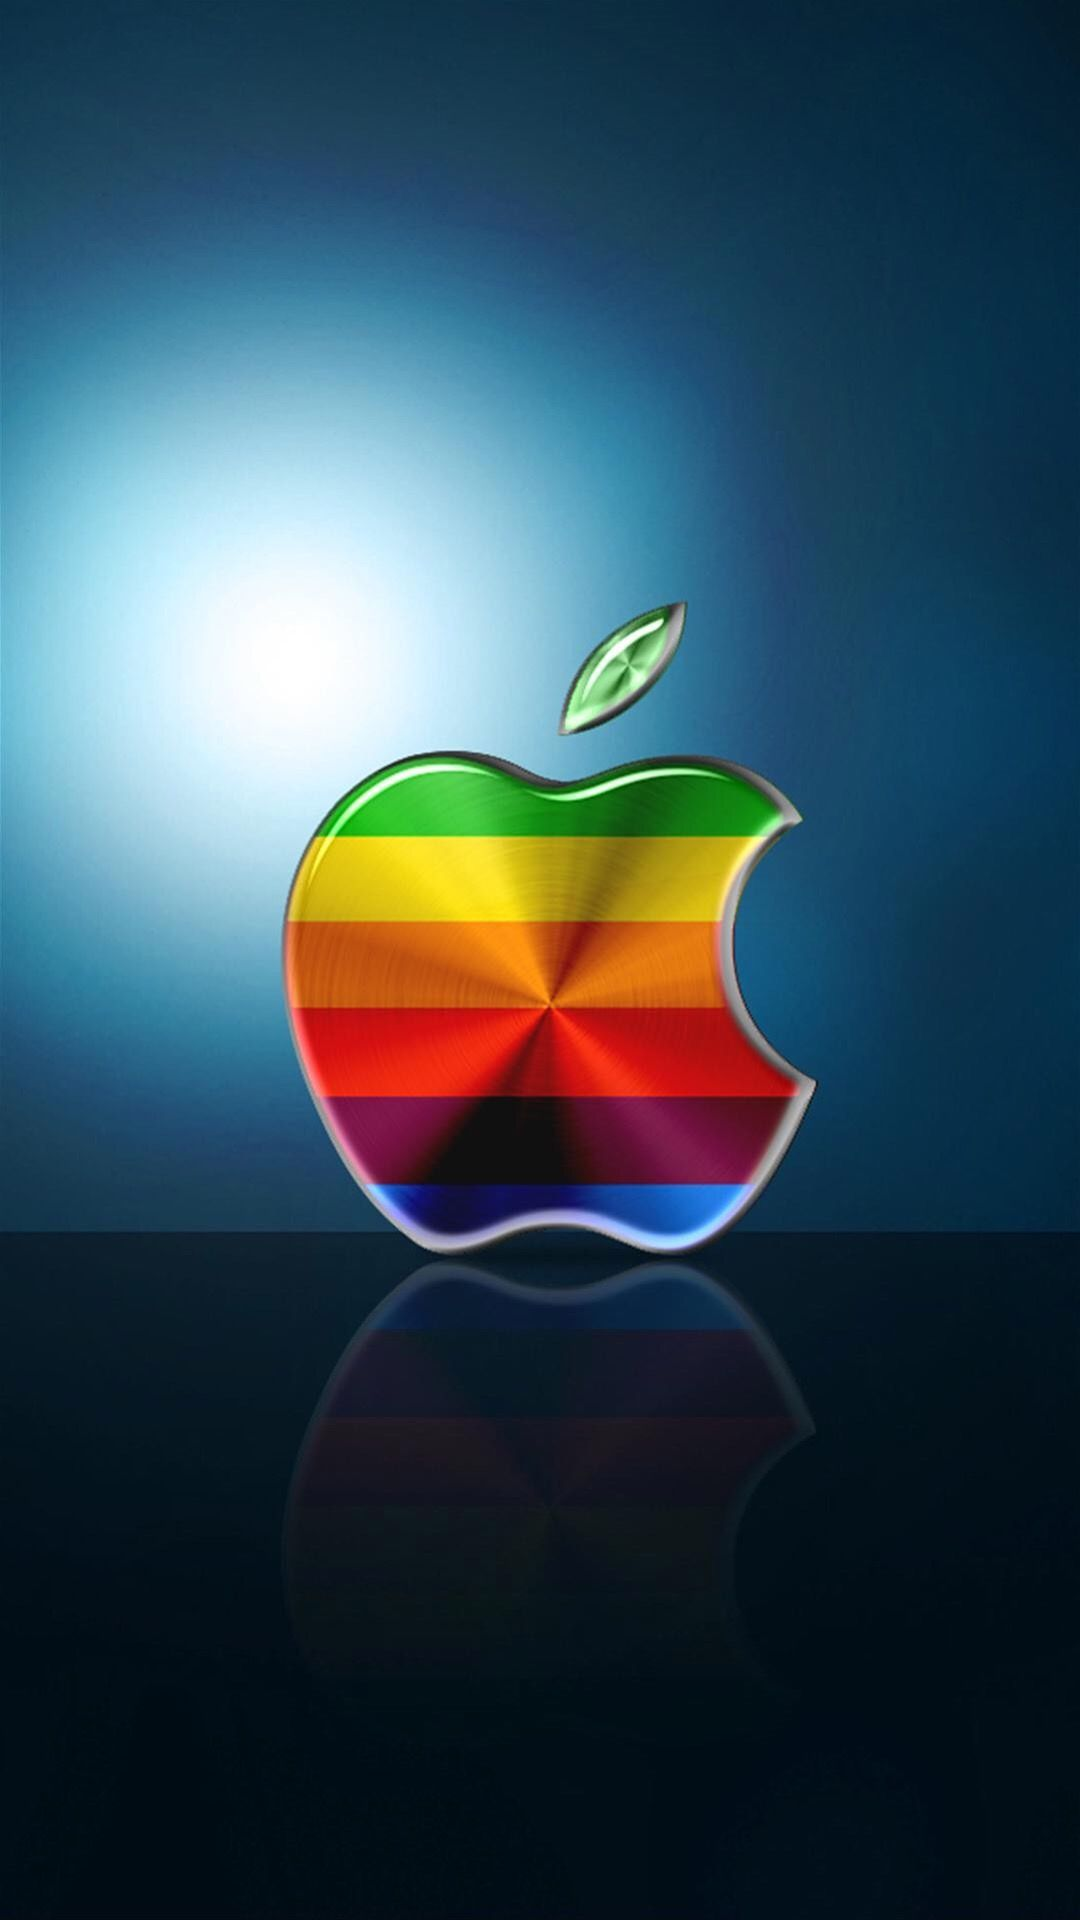 Apple Logo Apple Wallpaper Hd 1080p Download For Iphone